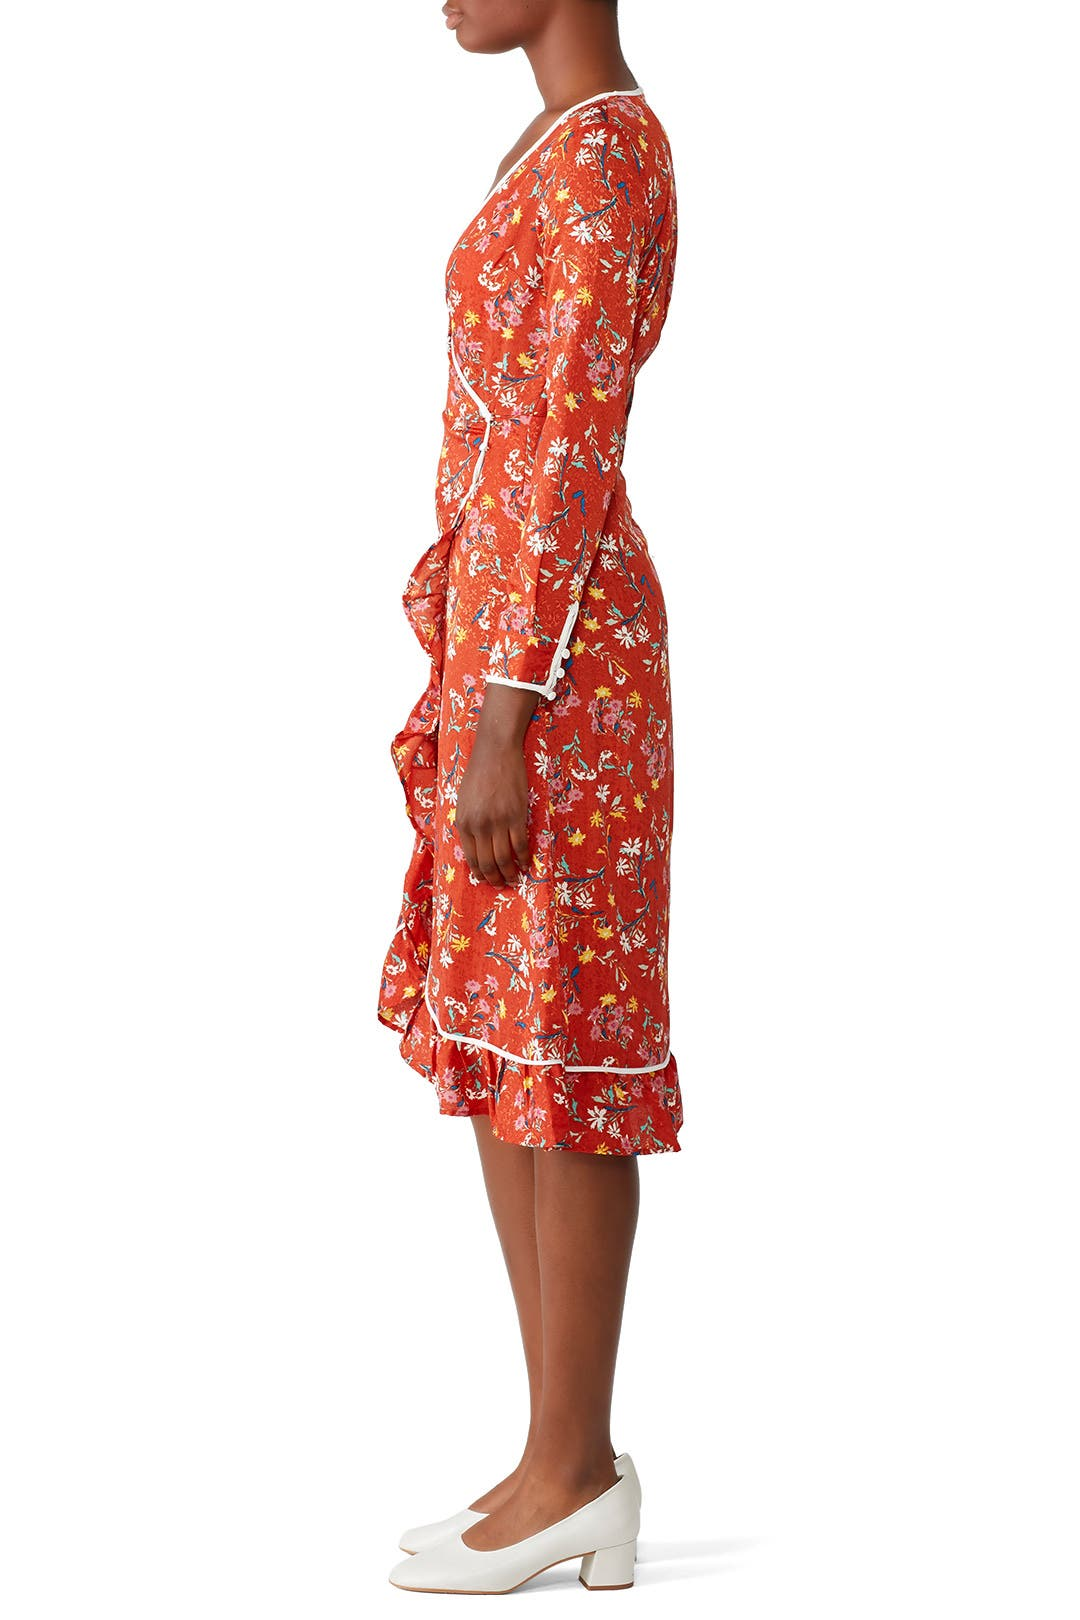 460b7489e4238 Covent Garden Dress by Free People for  30